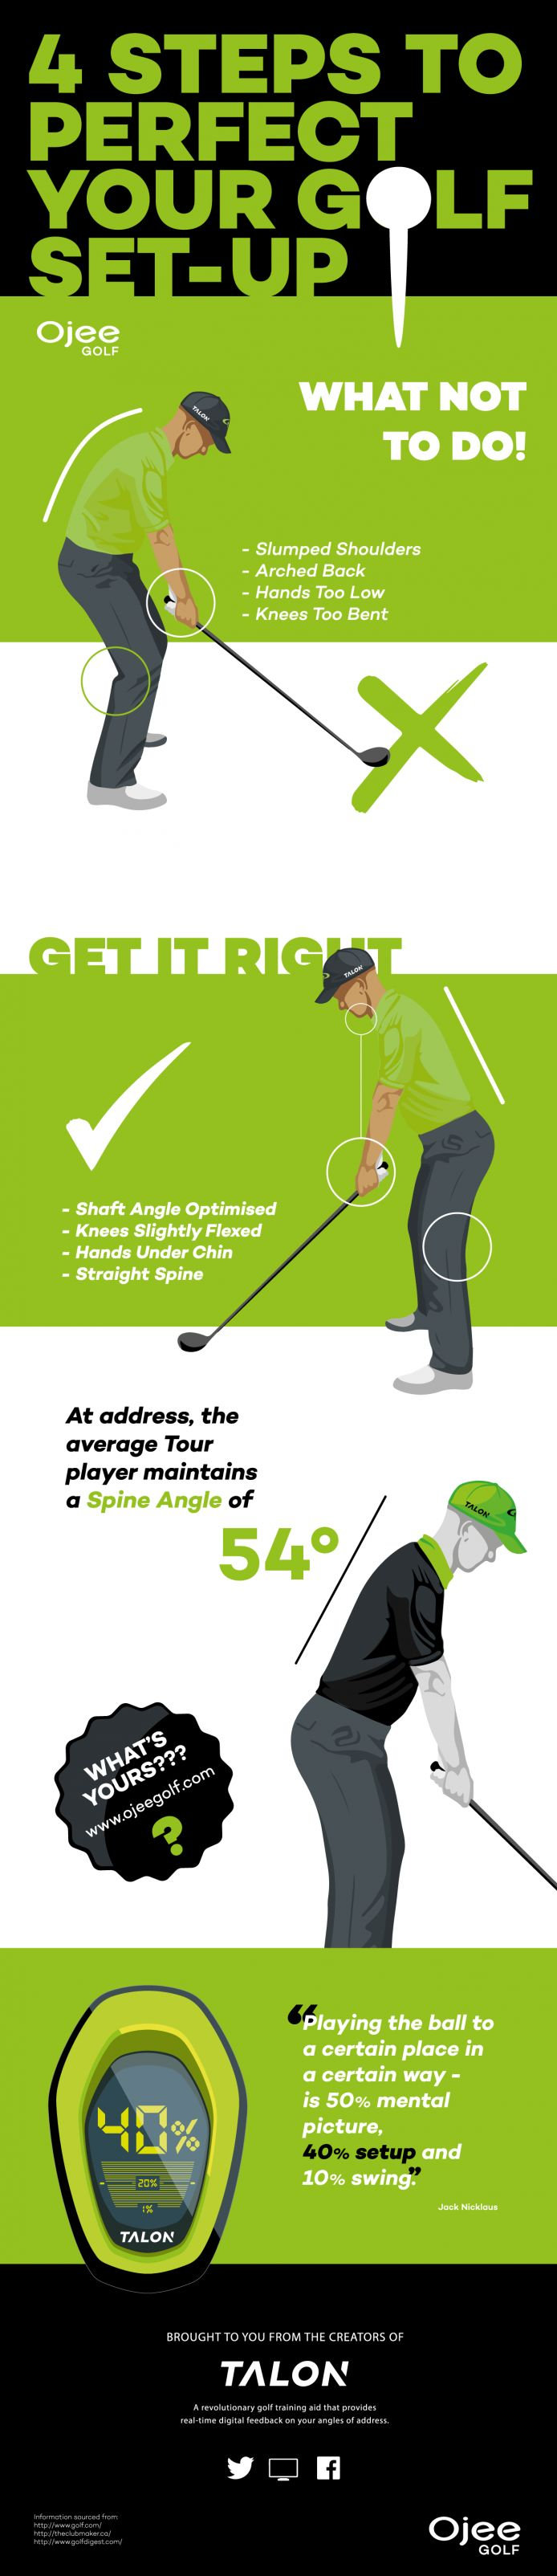 4 Steps to perfect your golf set-up #AllAboutGolfAndGolfThings!